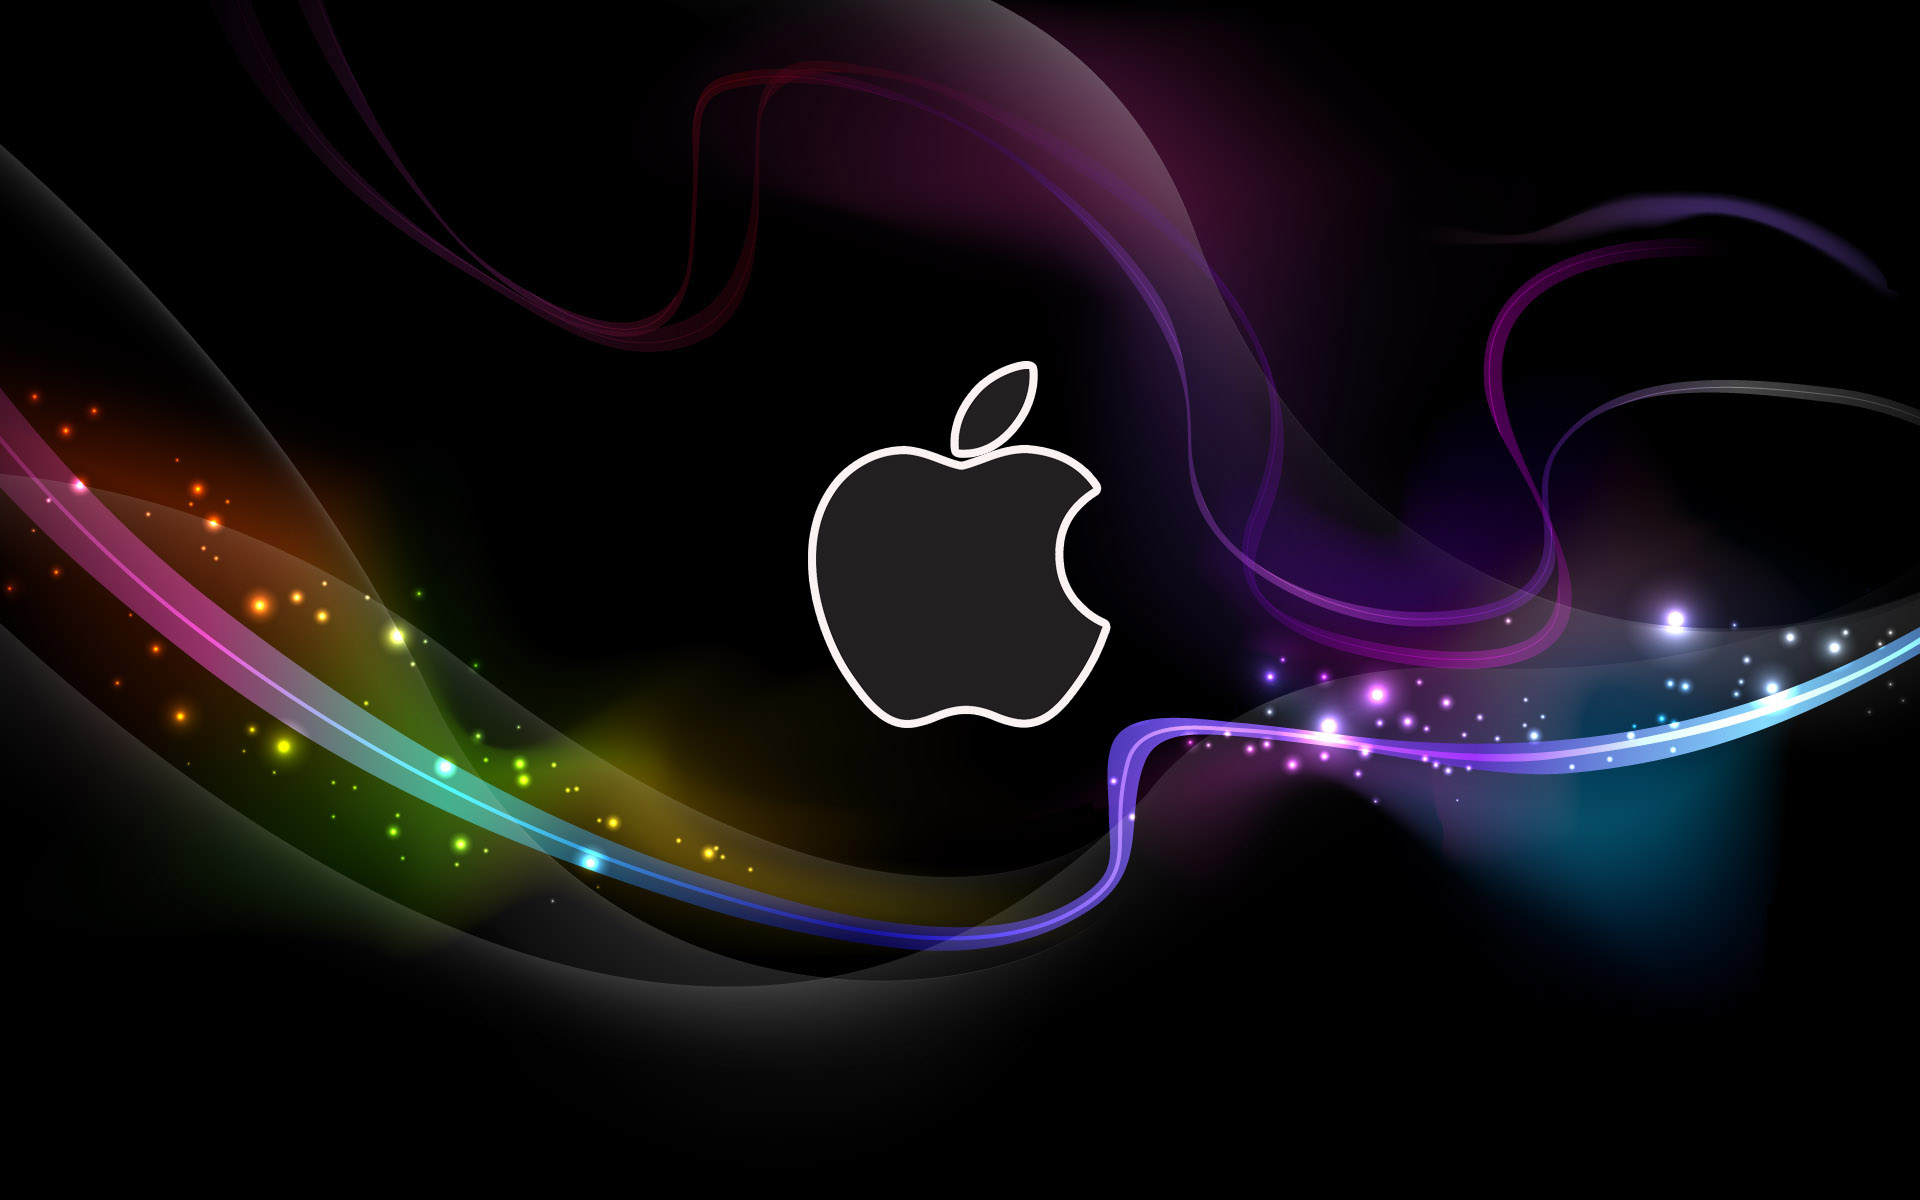 Apple Wallpaper Free Download Laptop